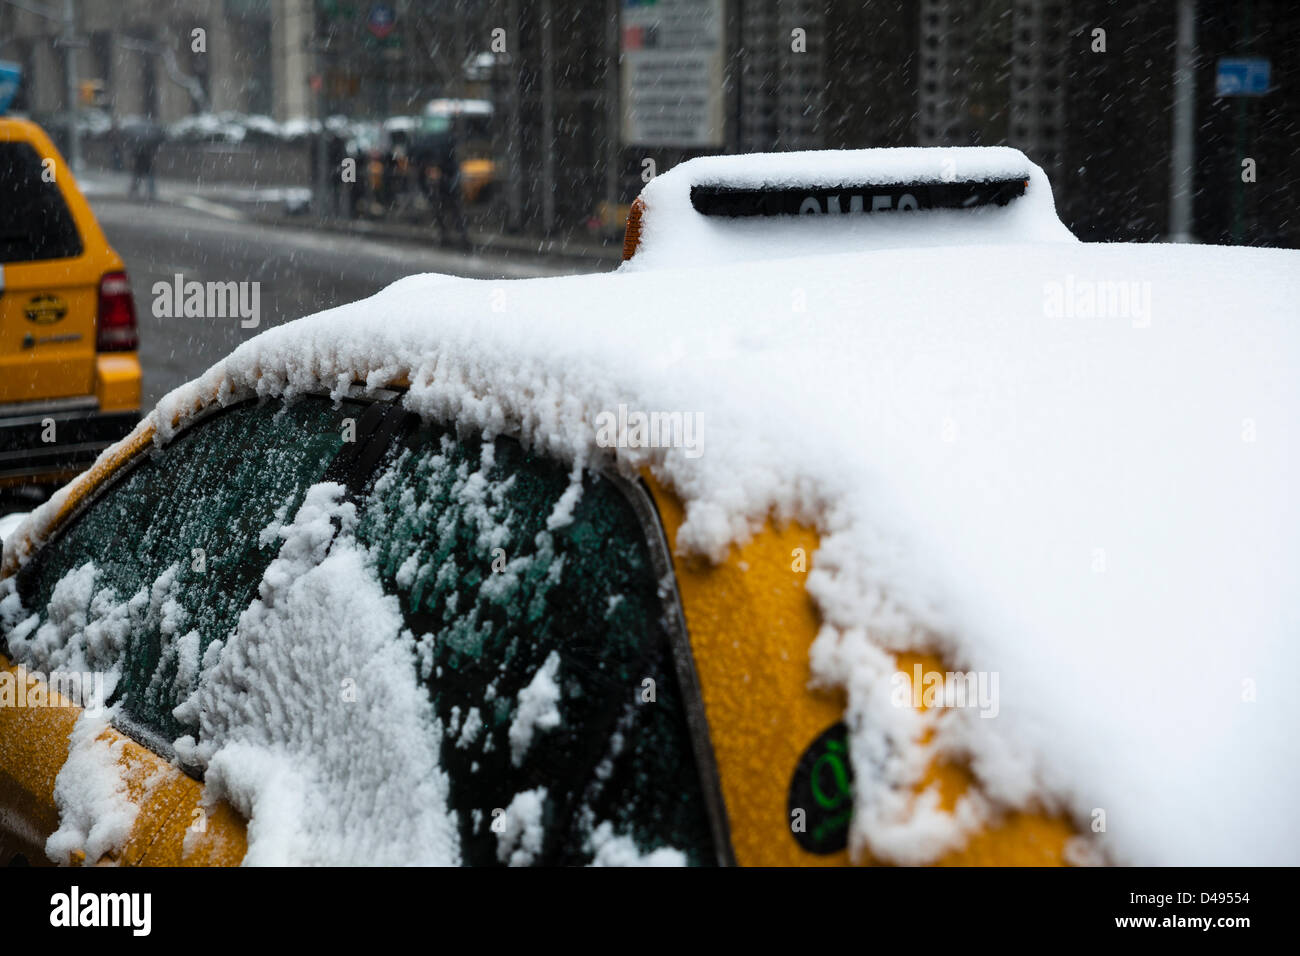 New York, USA. 8th March 2013. The strong snowstorm, day ago paralyzed a life in Washington and middle USA states, - Stock Image